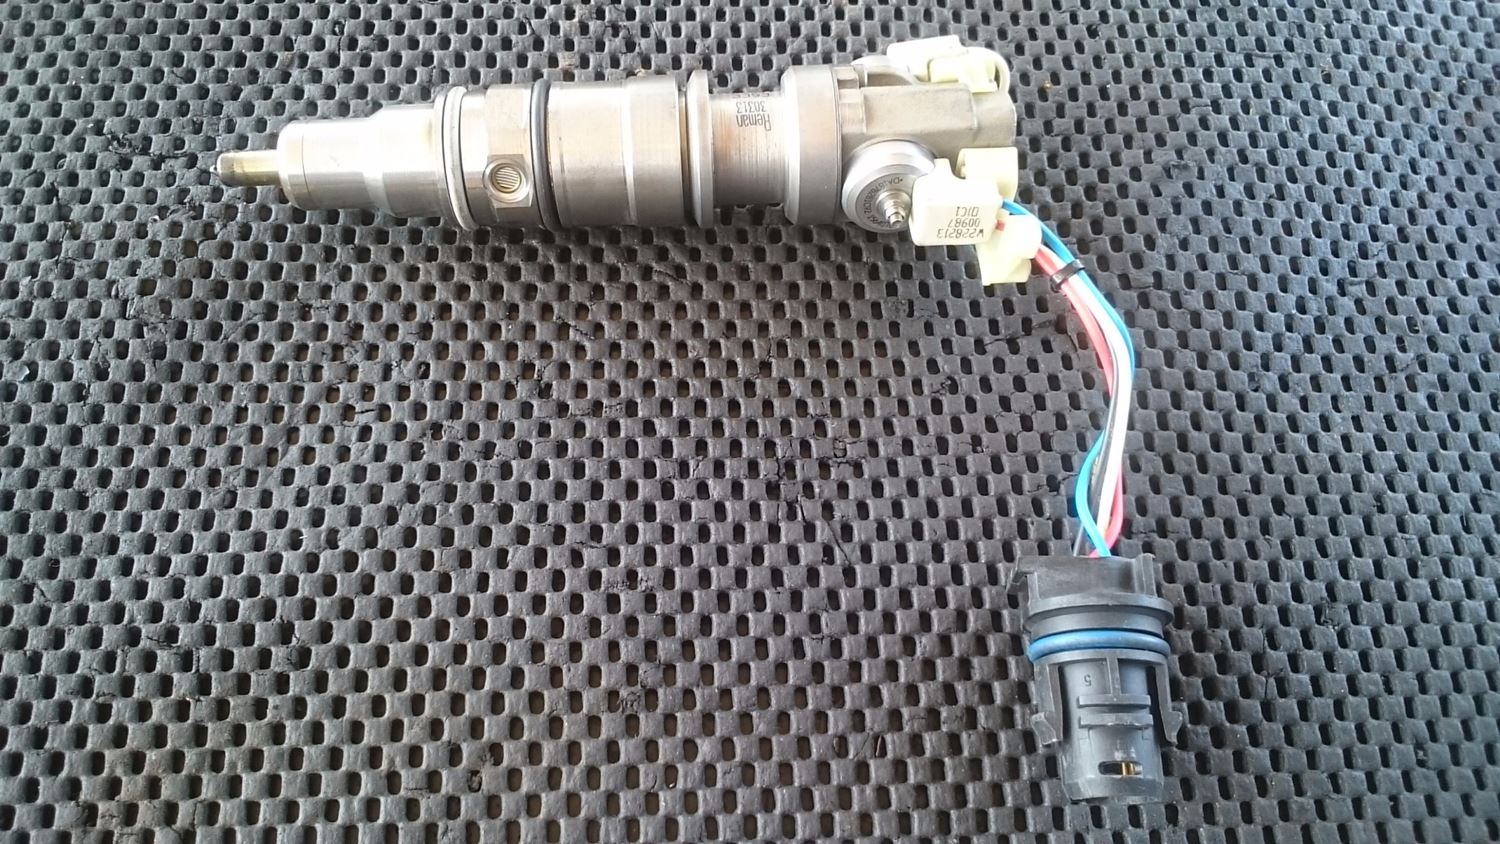 hight resolution of fuel injection parts new and used parts american truck chrome engine wiring harness vt365 injector wiring harness